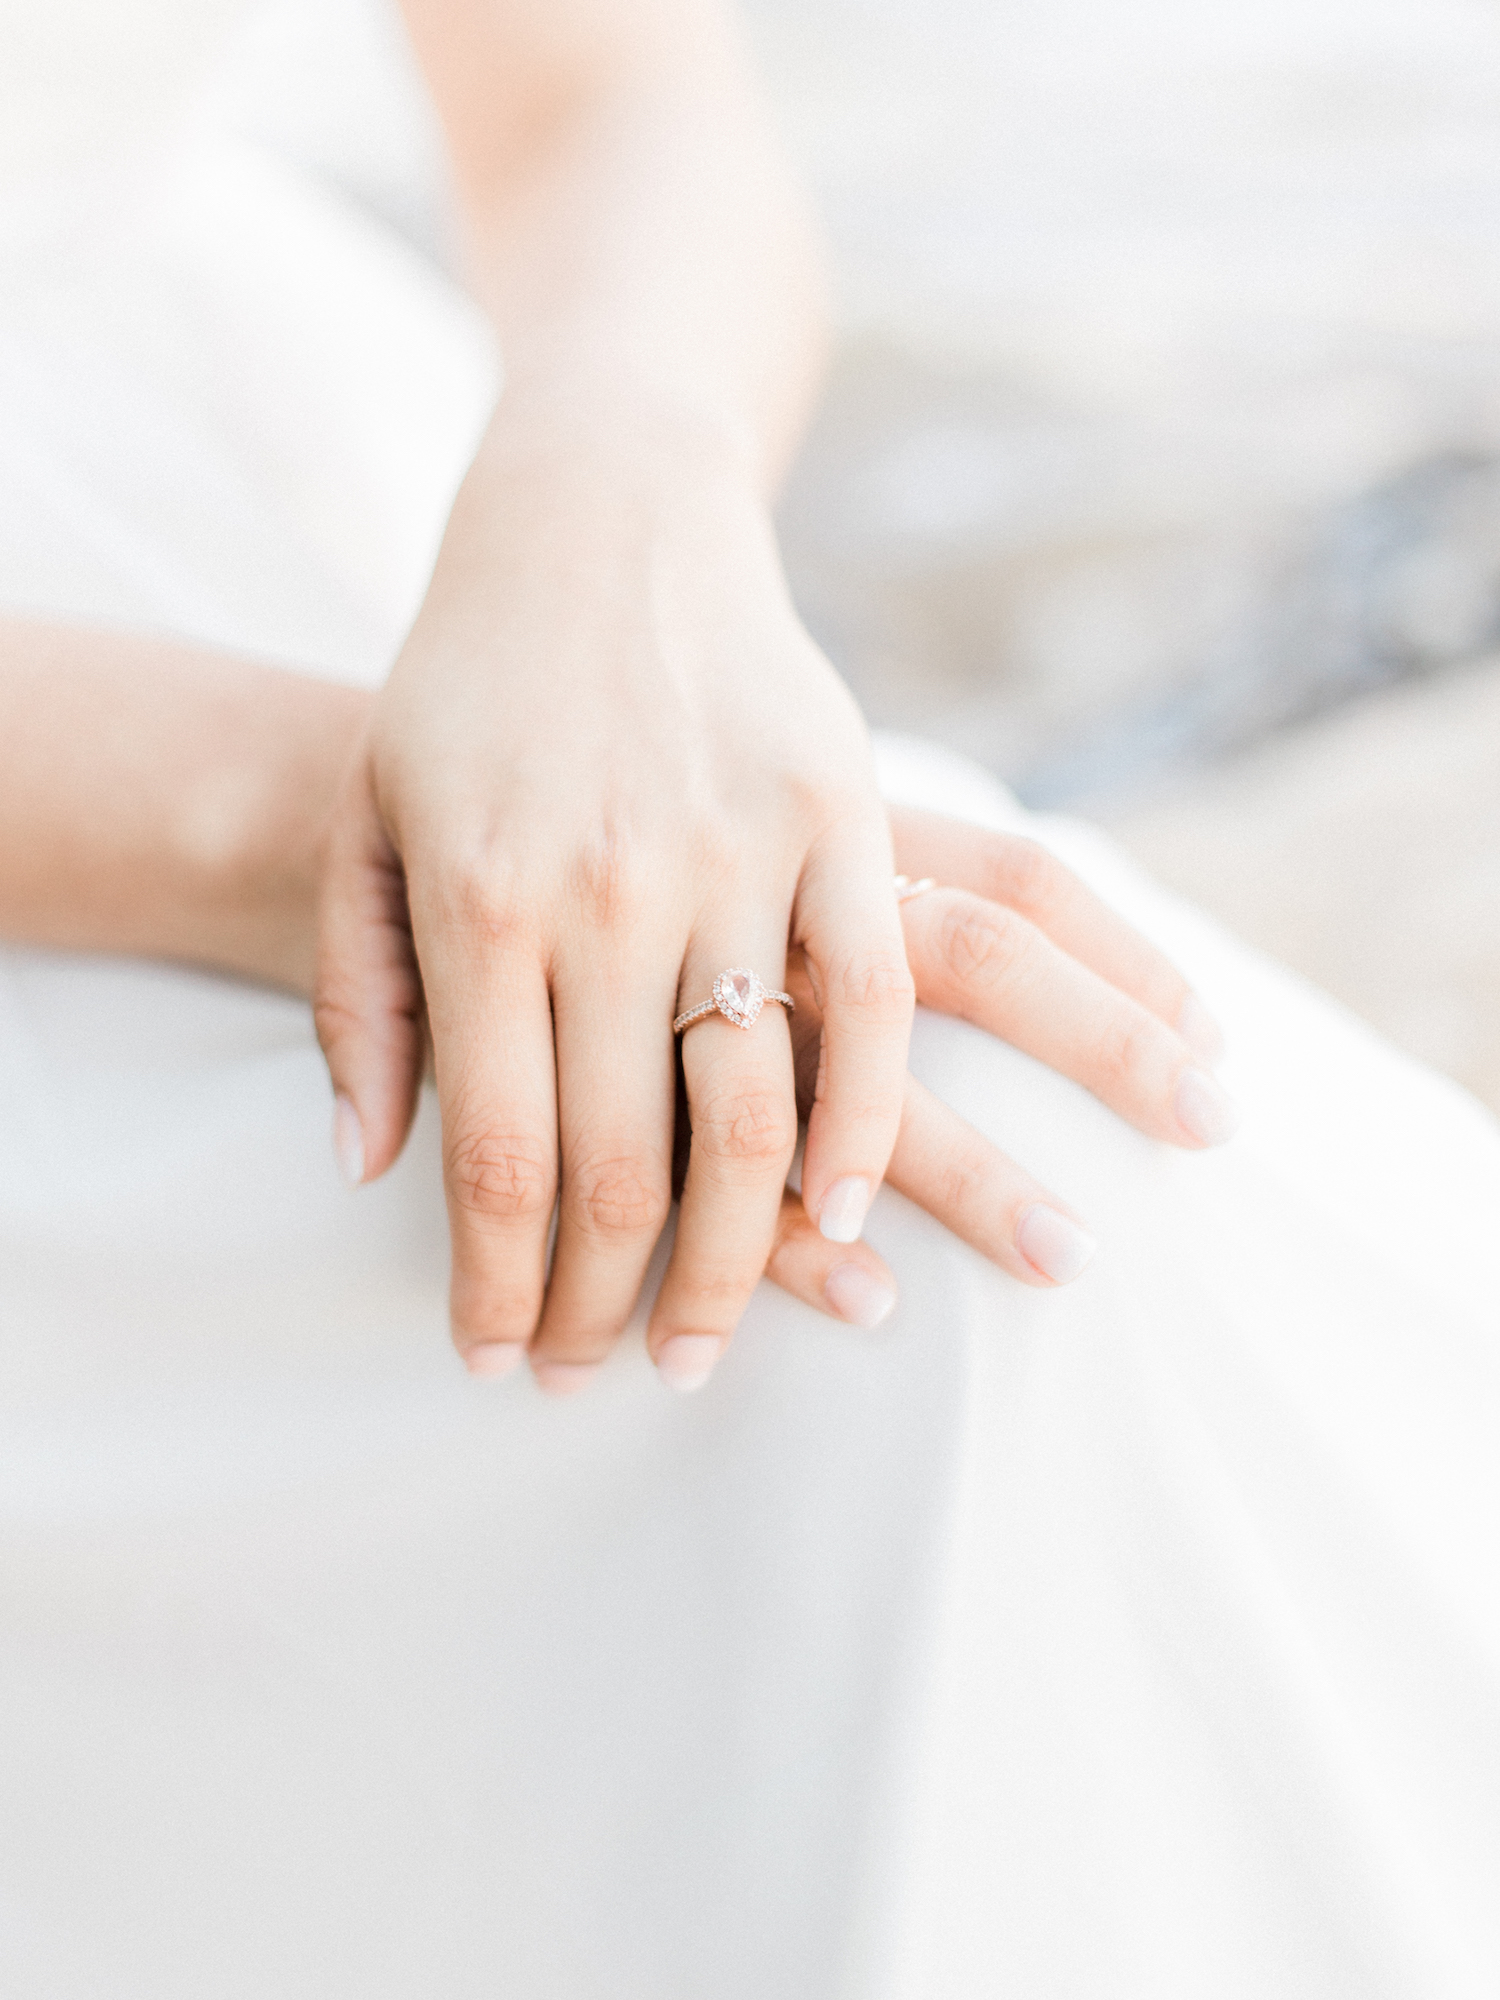 Pear shaped diamond rose gold engagement ring. Spring engagement session at Sweetwater Creek State Park in north Georgia. Featuring white, neutral outfits and natural and organic elements. Photo by Kesia Marie Photography - fine art wedding and portrait photographer in Atlanta, Georgia.